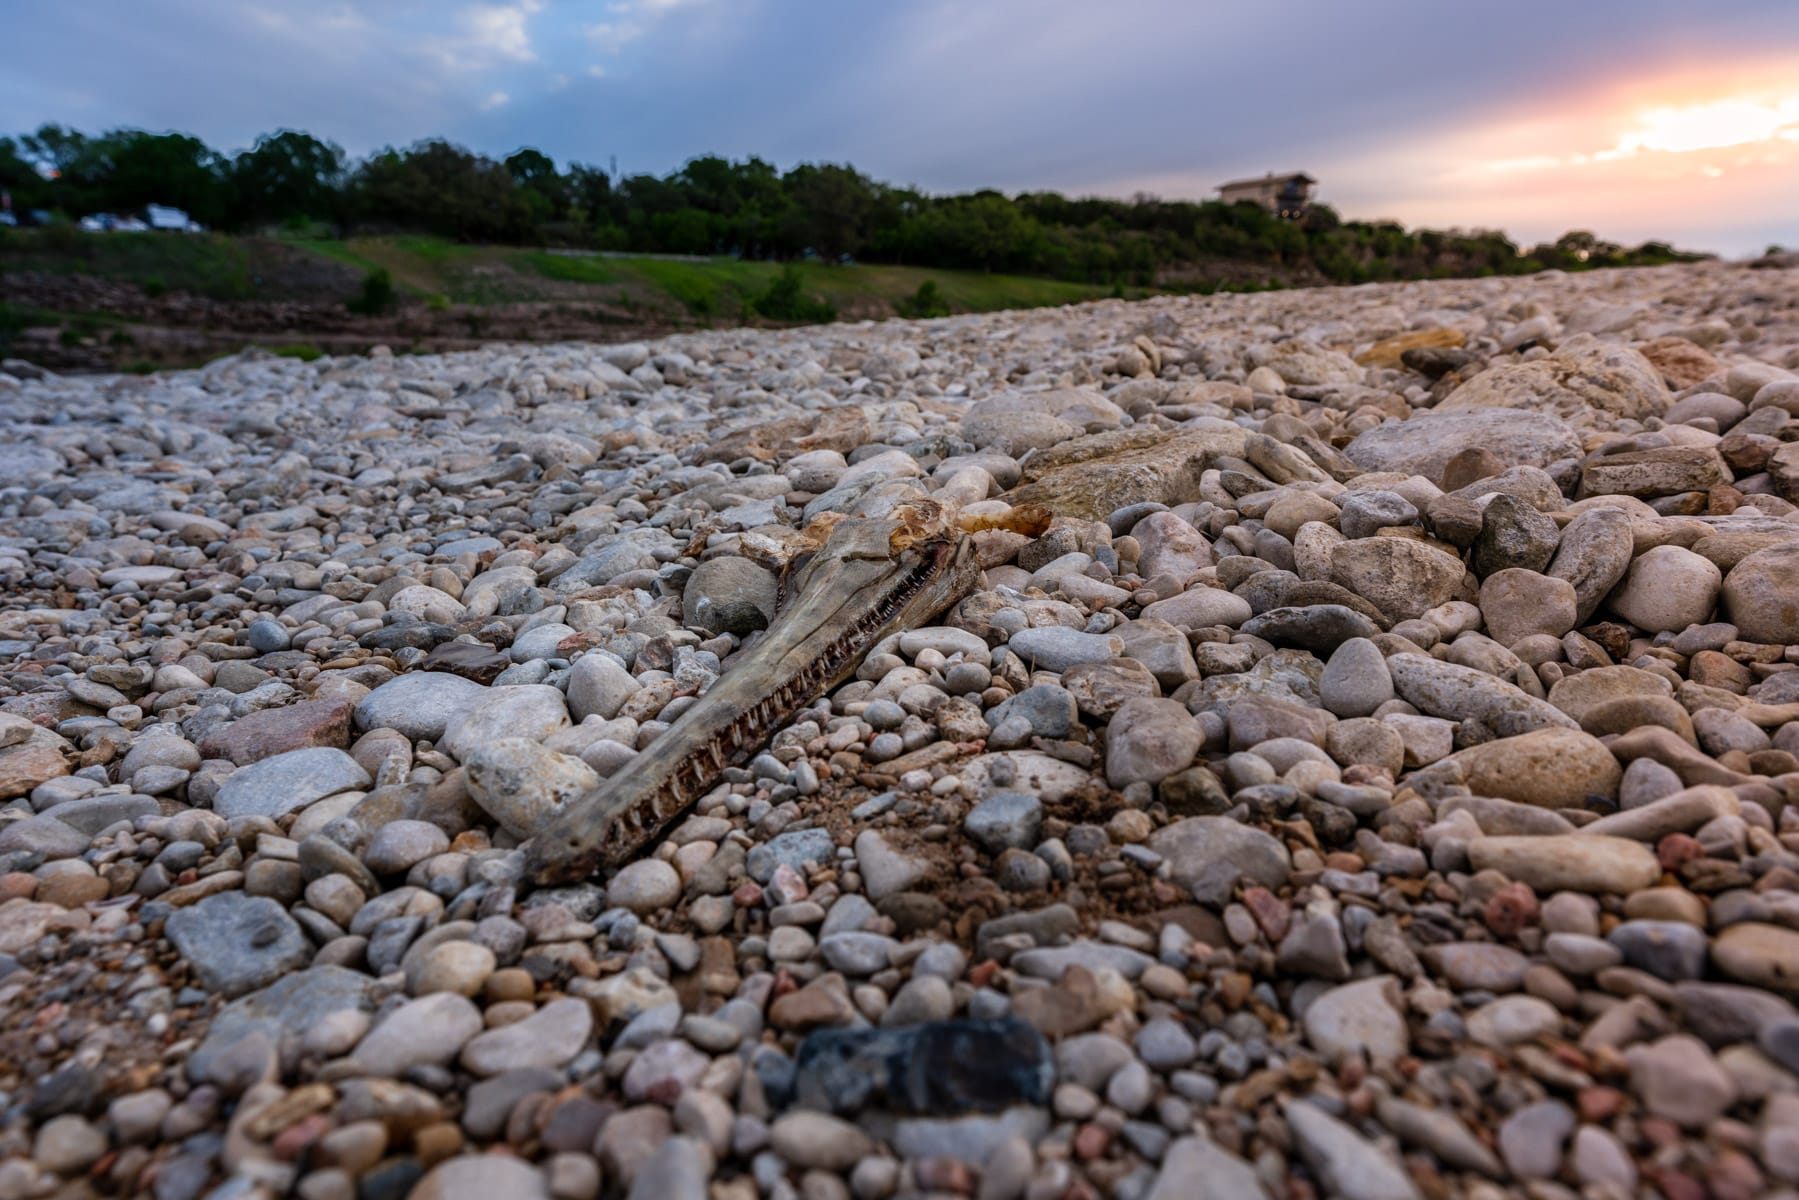 An alligator gar skull atop river rocks along the banks of the Llano River near Mason, Texas.